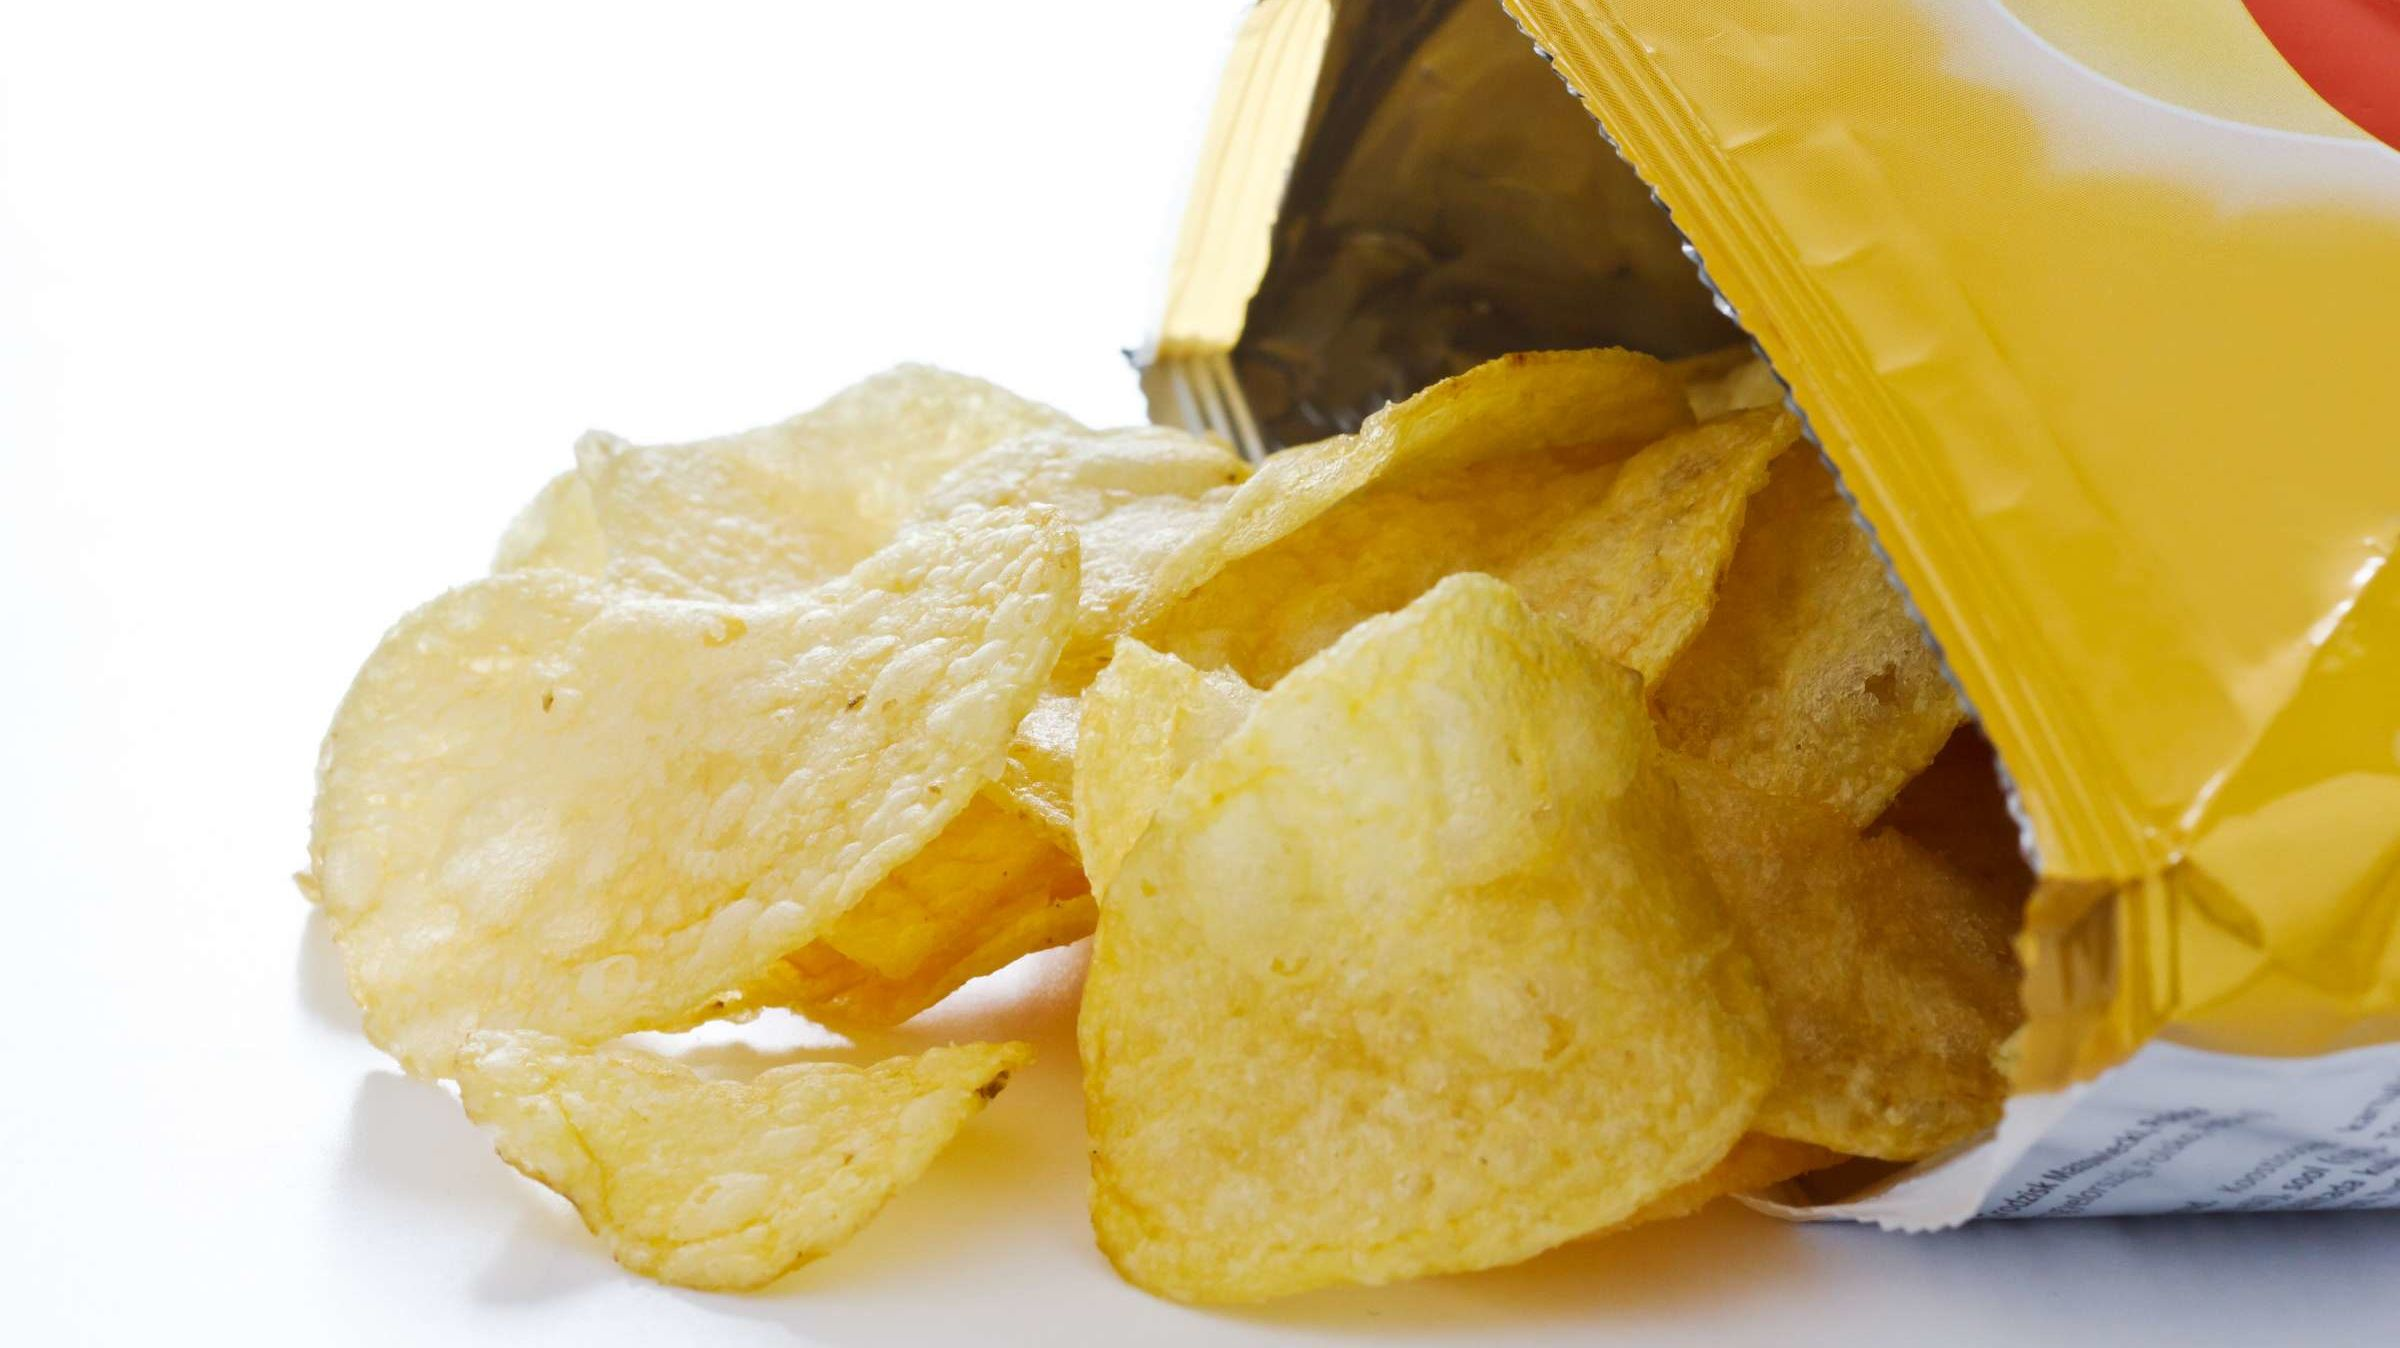 This Nifty Potato Chip Bag Hack Is Amazing the Internet